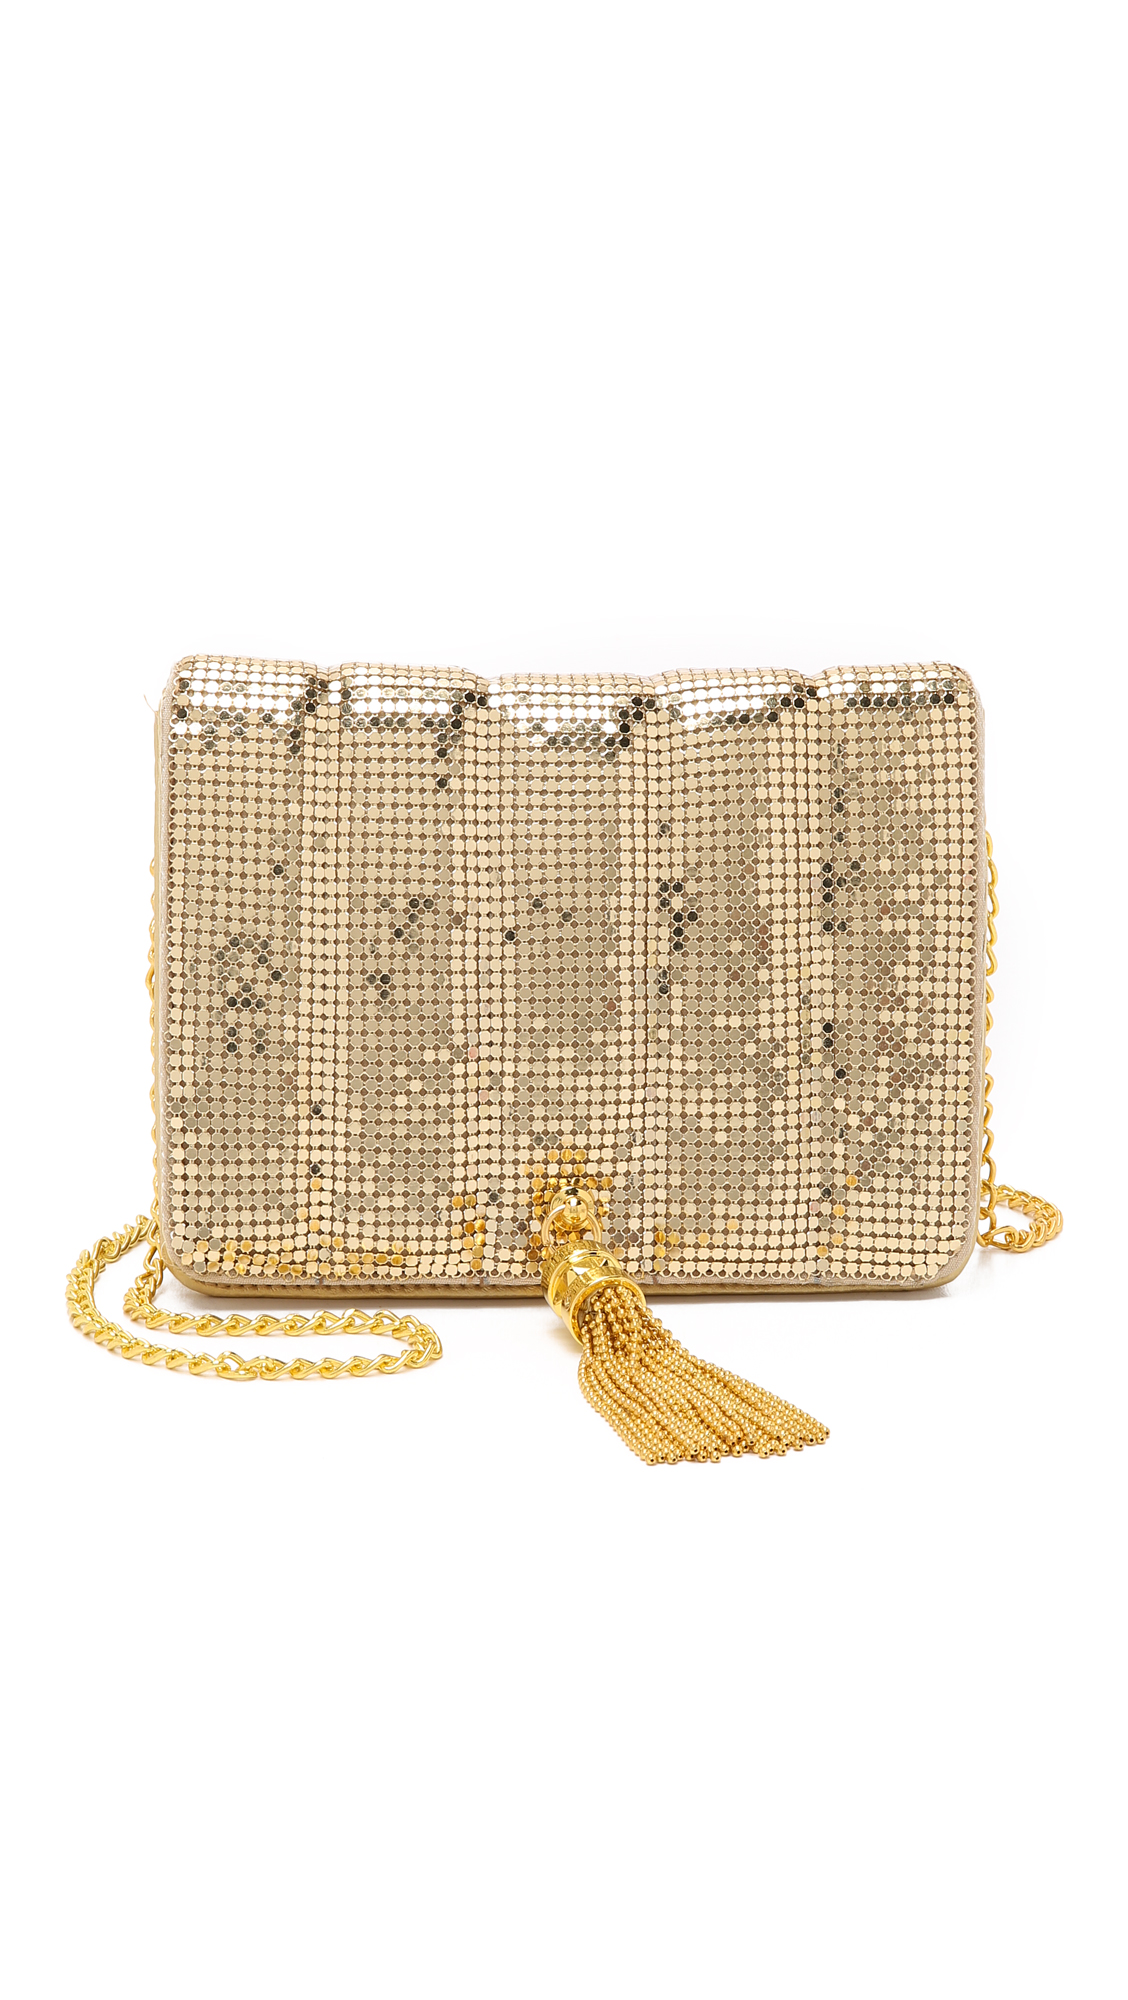 Whiting & Davis Quilted Tassel Bag - Gold